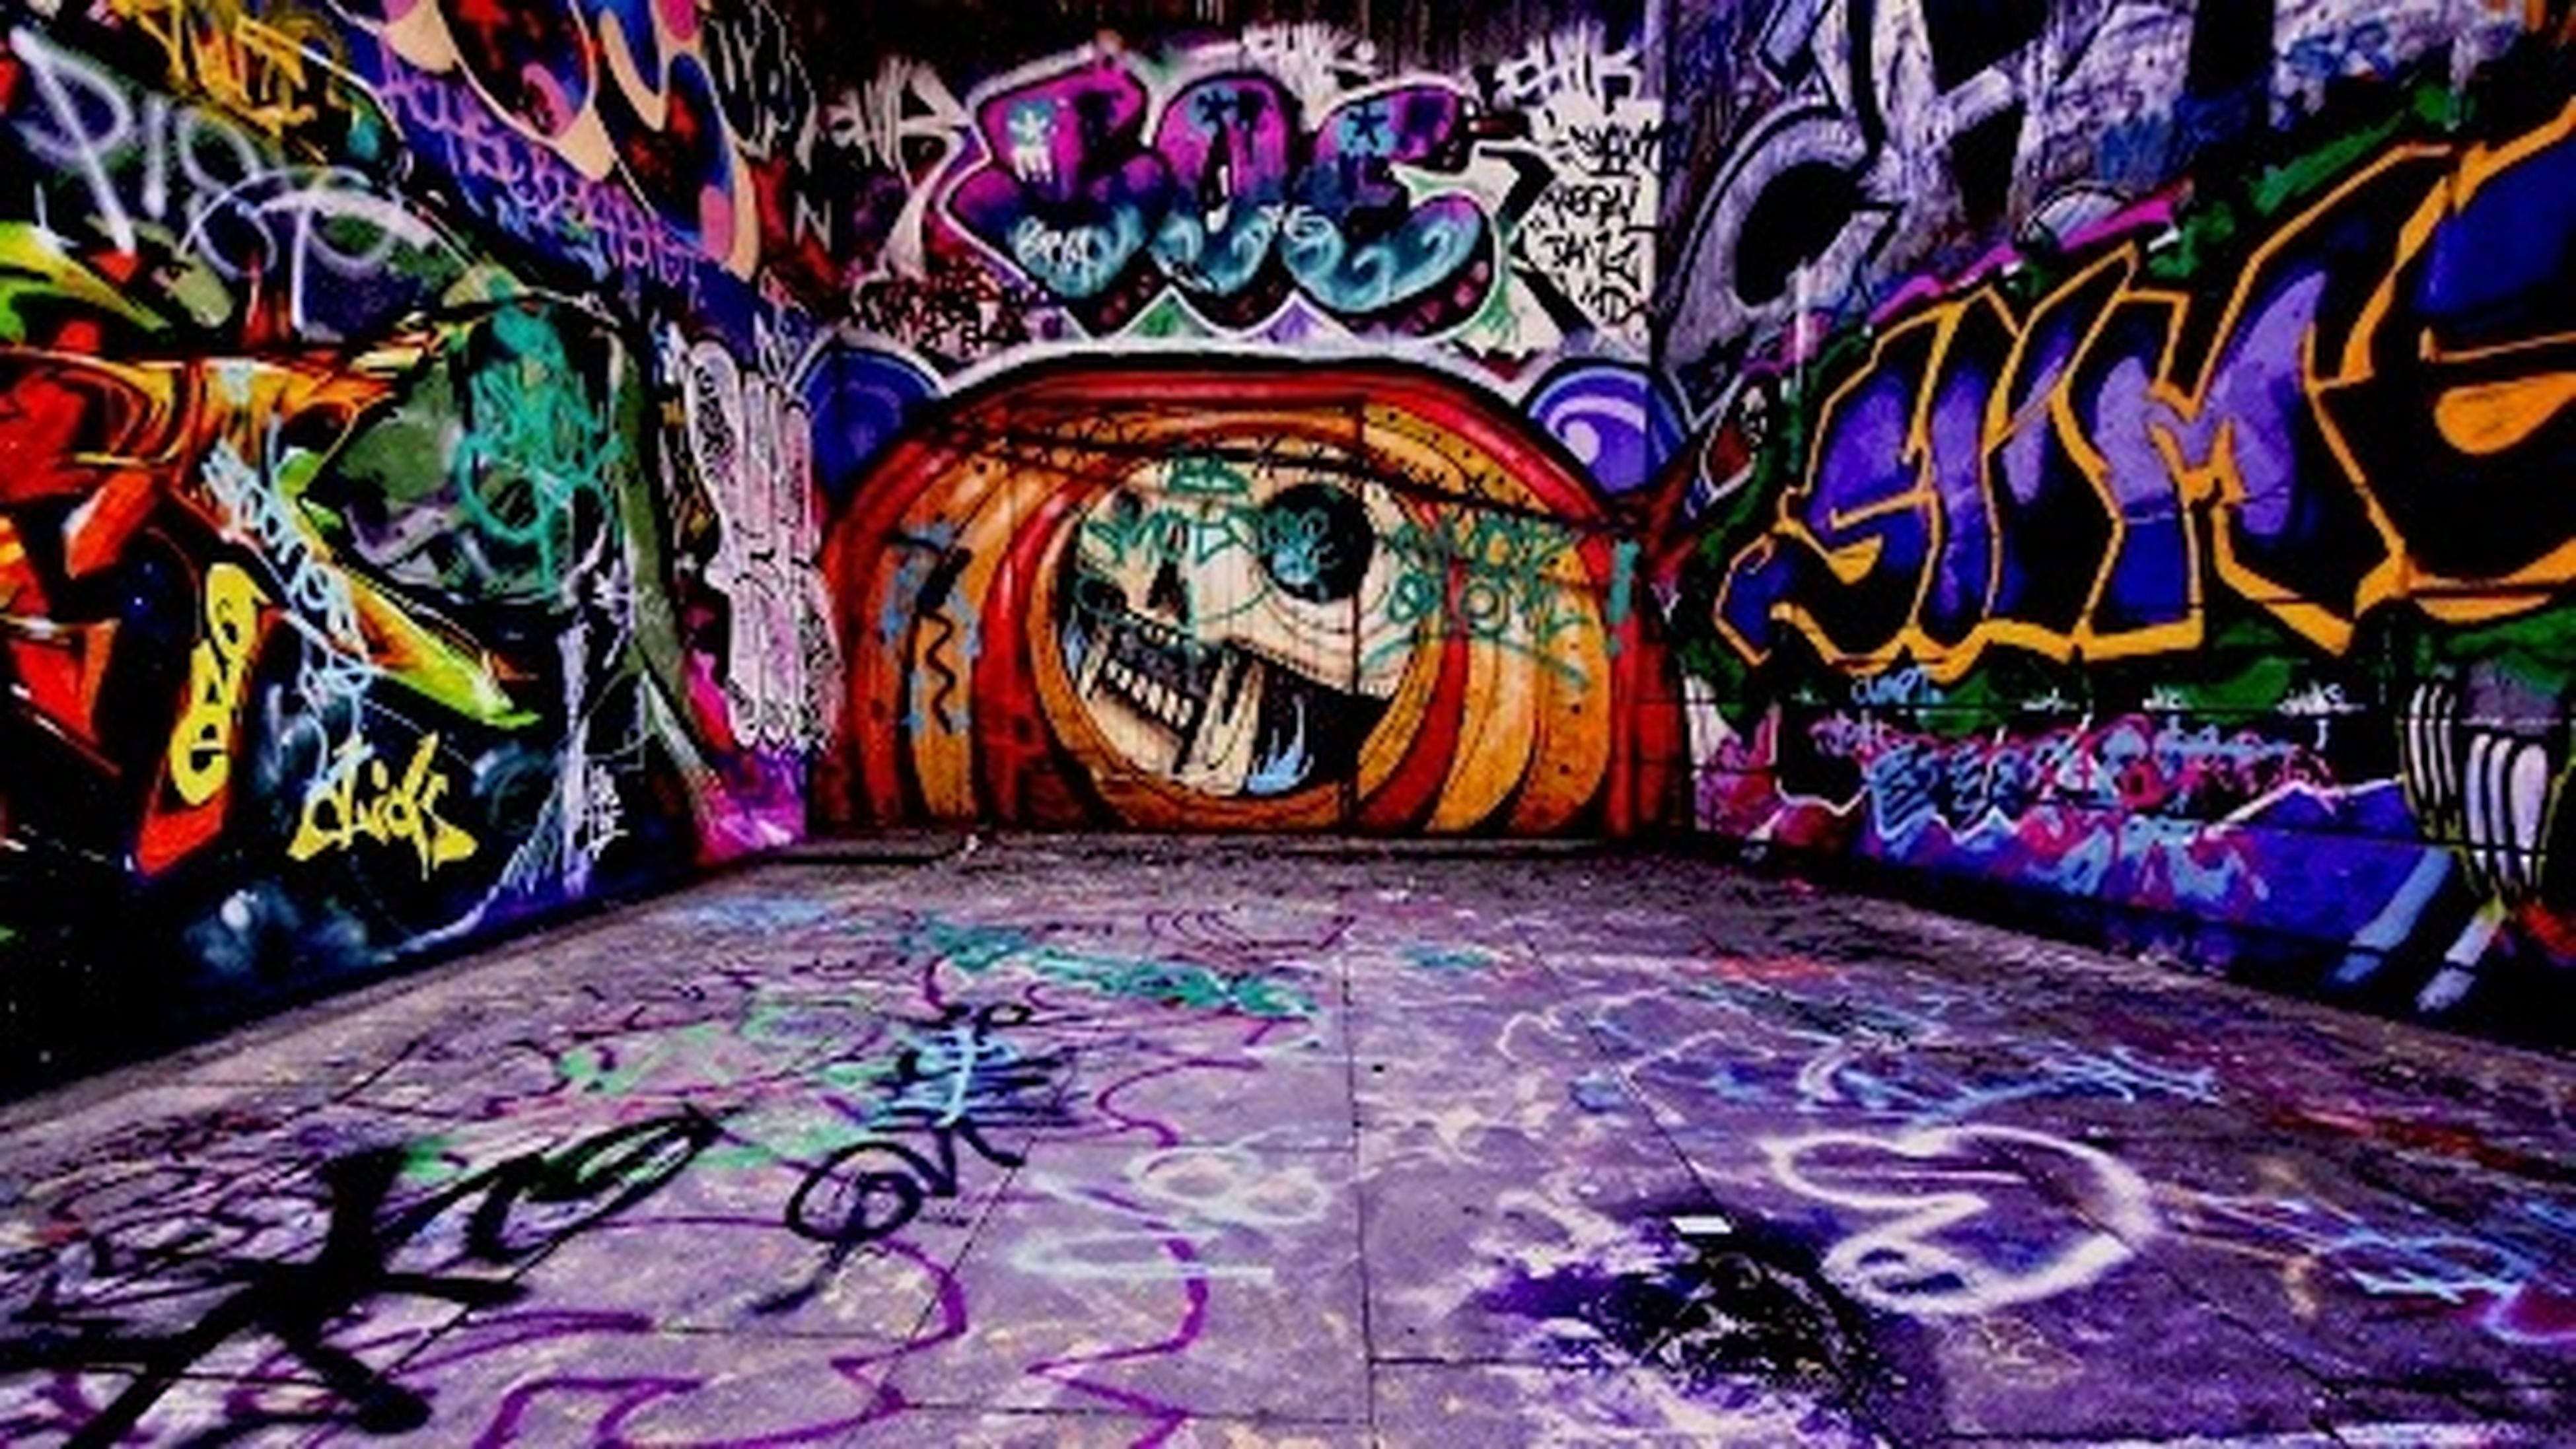 multi colored, art and craft, creativity, art, graffiti, pattern, indoors, design, colorful, full frame, street art, backgrounds, wall - building feature, floral pattern, blue, textured, fabric, painting, textile, no people